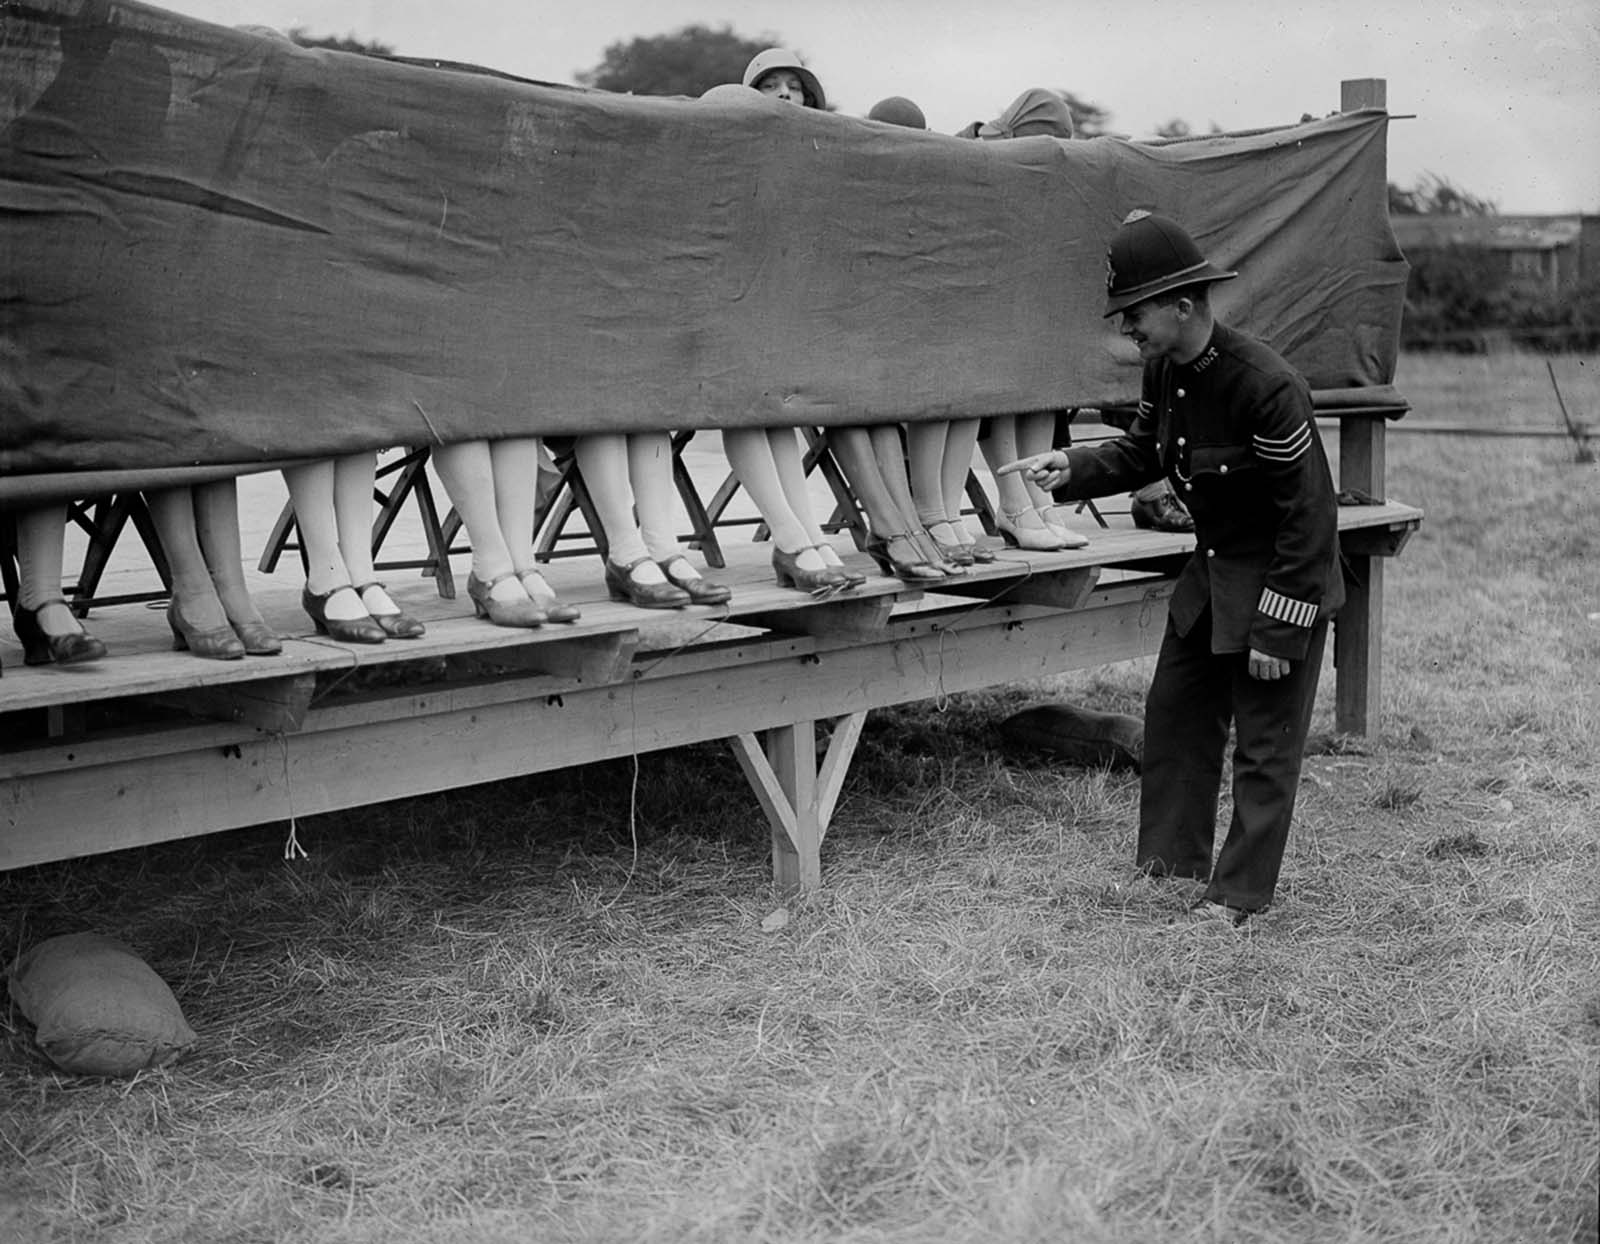 A policeman judges an ankle competition at Hounslow, London. 1930.